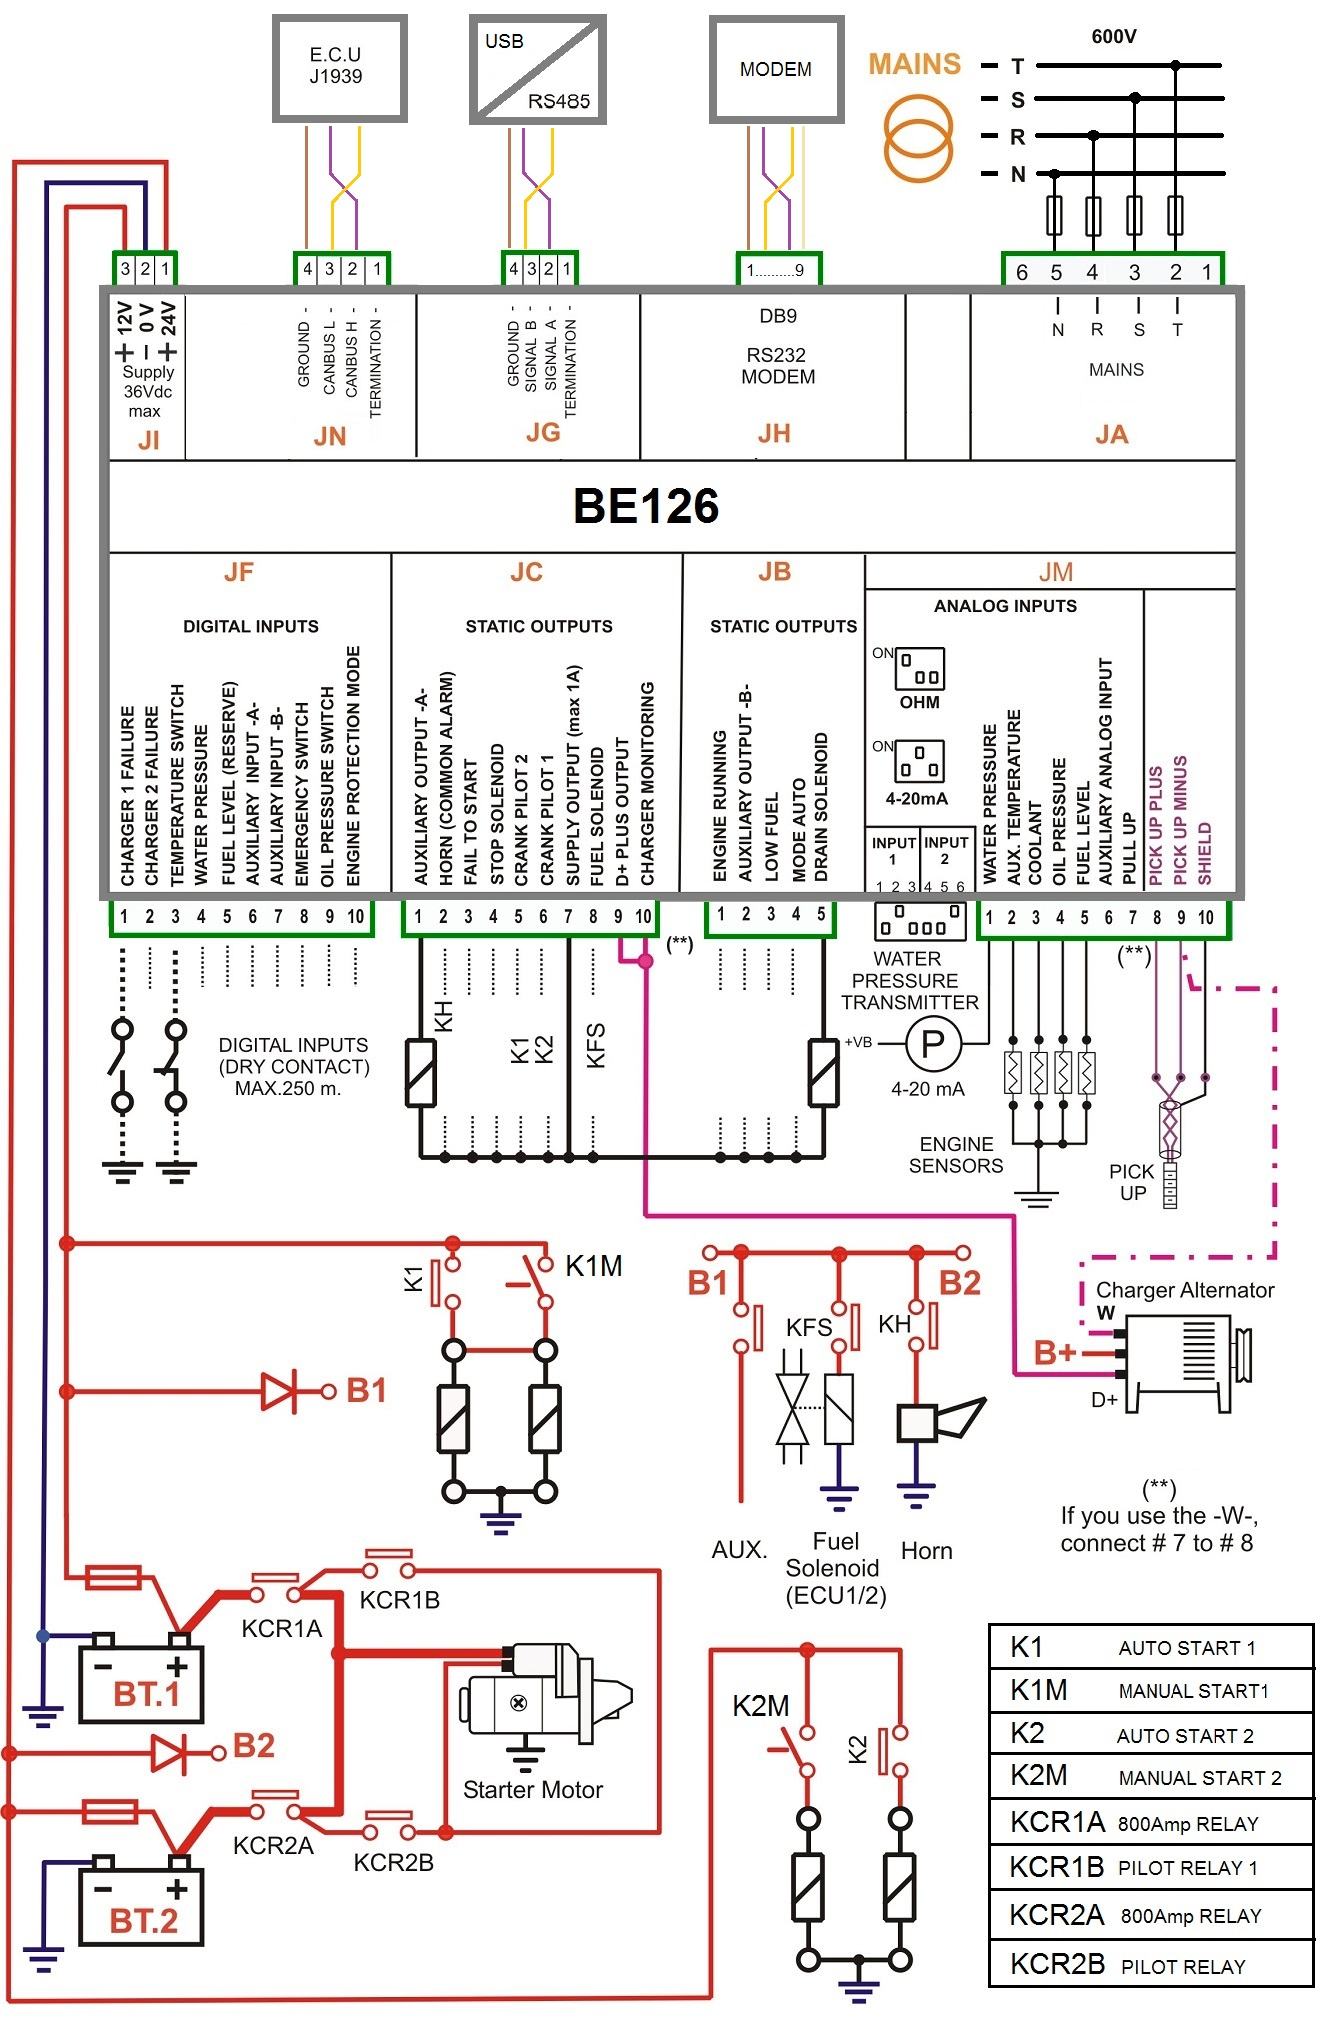 sump pump control wiring diagram trusted wiring diagrams u2022 rh sivamuni com